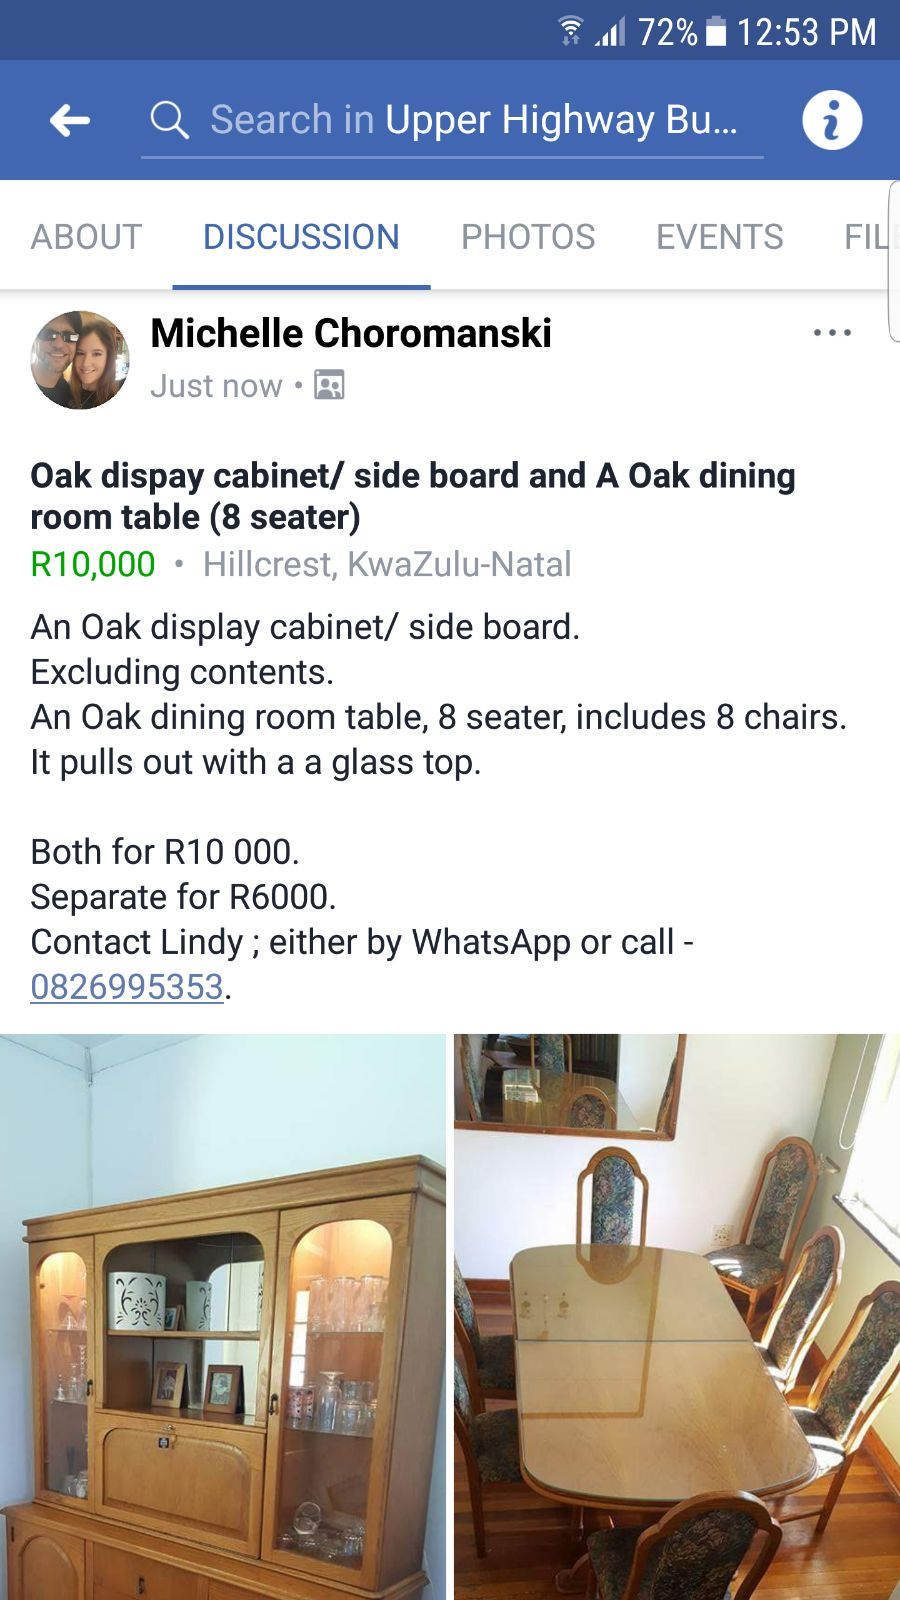 Lovely oak side board/cabinet and dinning room table